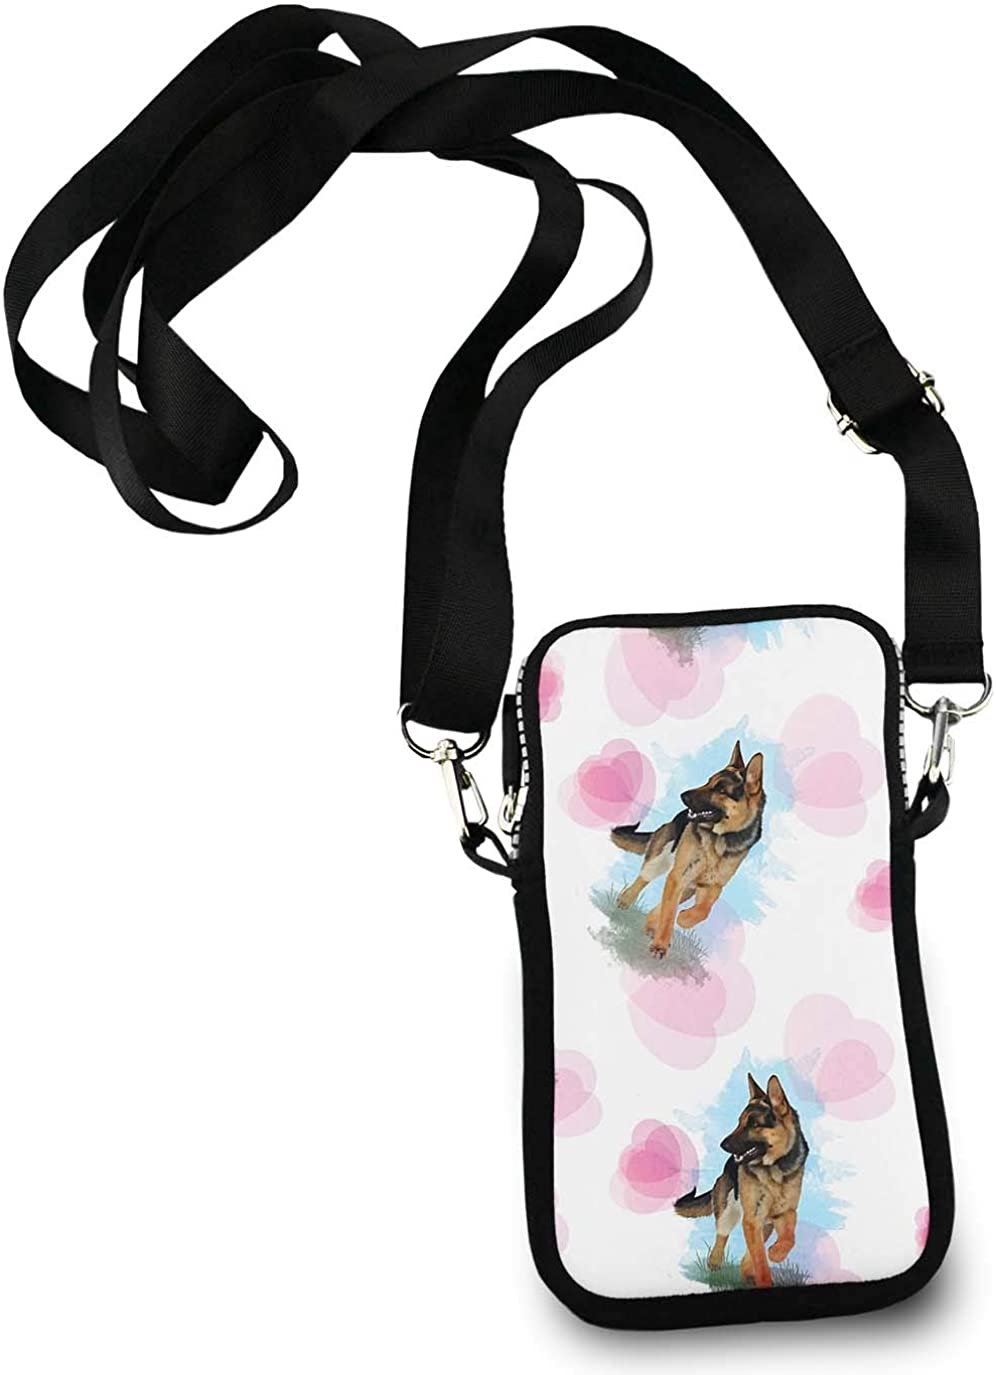 Casual Security Pack Crossbody Phone Pouch With Shoulder Strap Wallet Handbag German Shepherd Dog Lovers